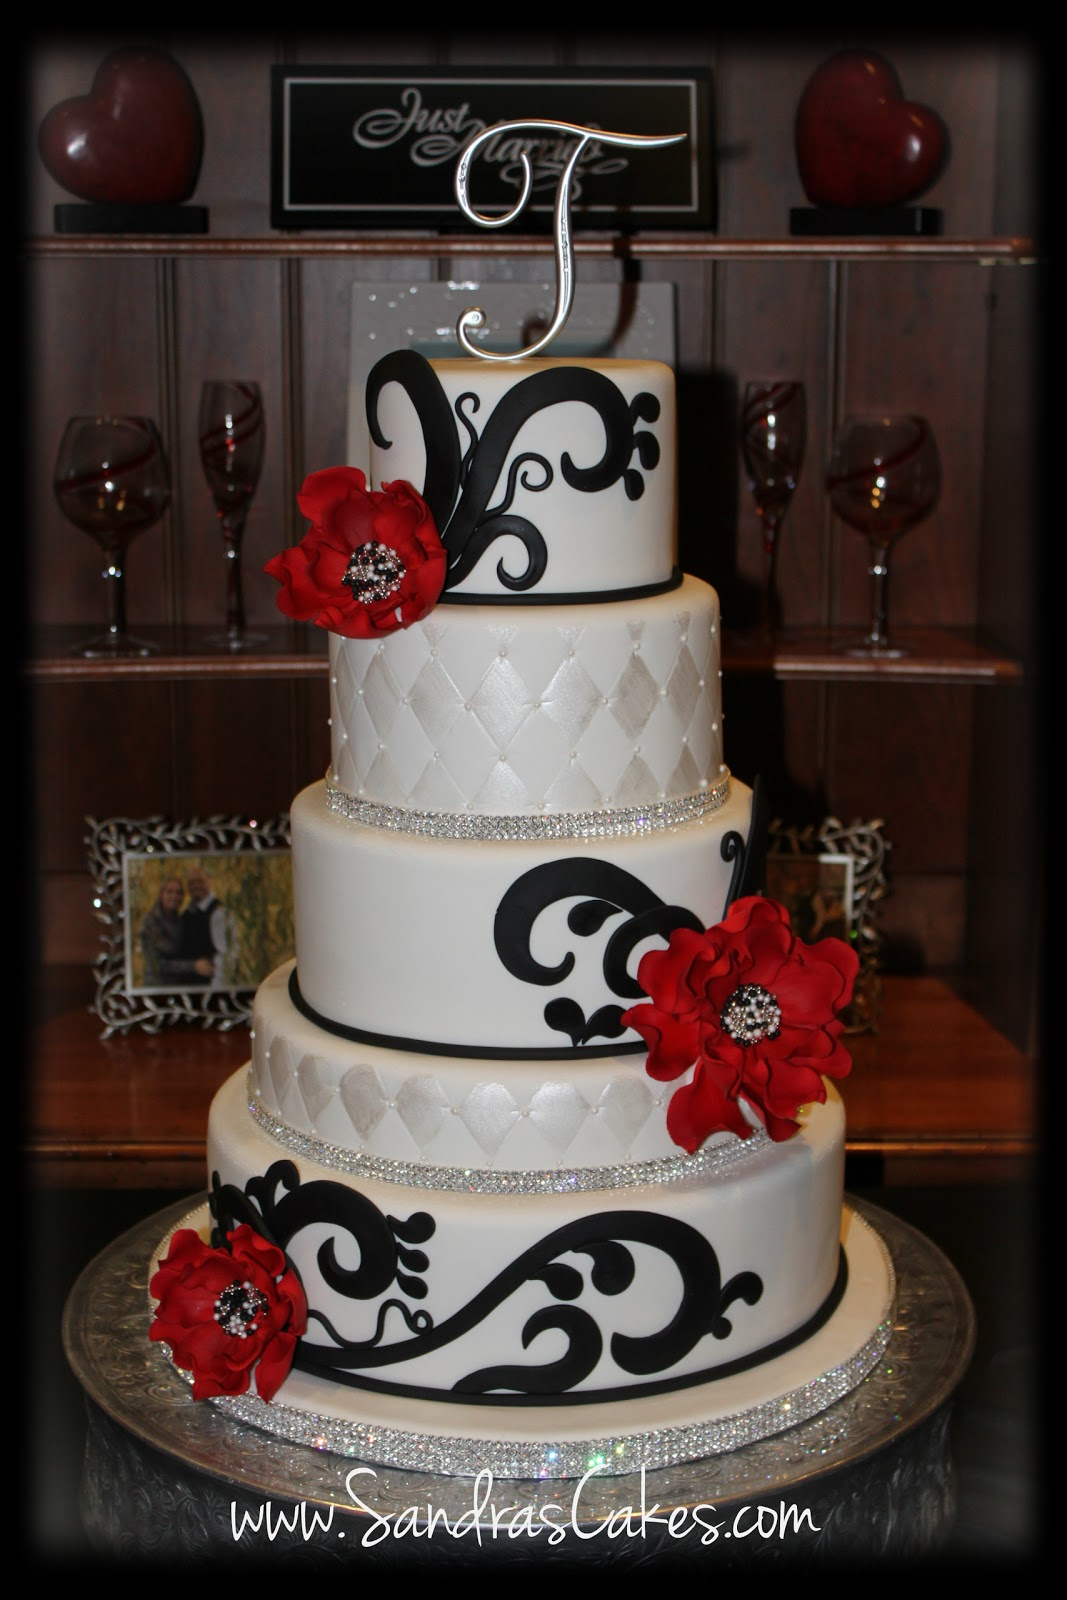 Here Is A Truly Beautiful Cake We Made Couple Of Weeks Ago I Was Very Pleased With It And So The Bride Wedding At Moorings Club In Vero Beach